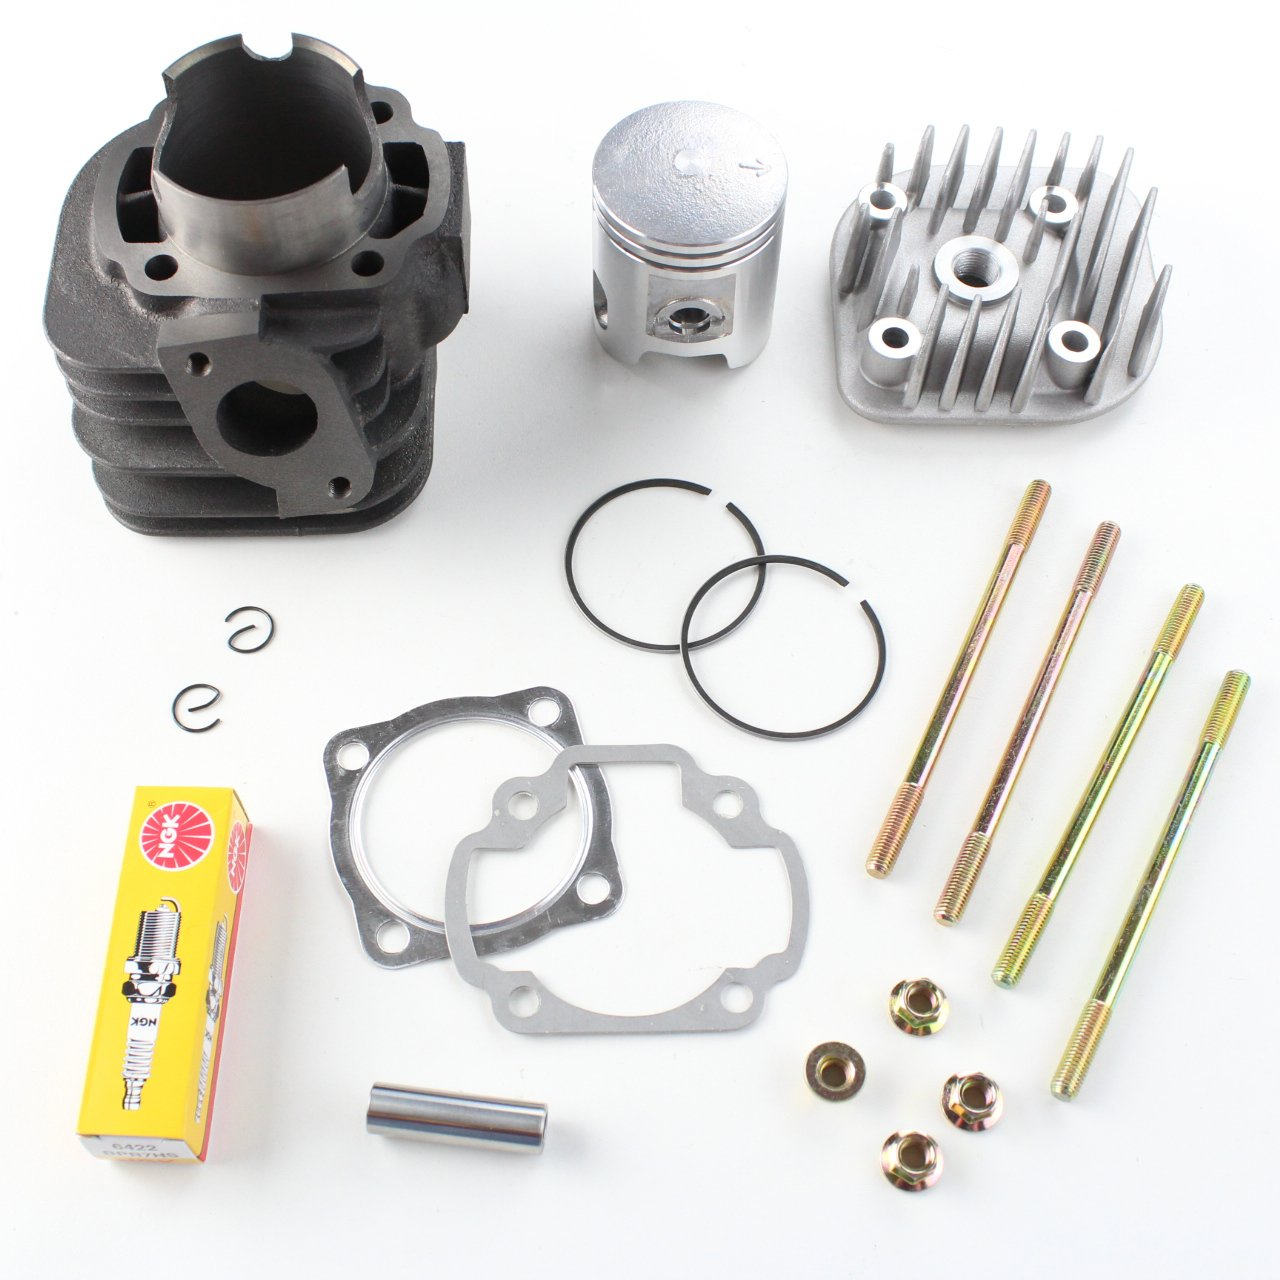 52mm 89cc Cylinder Head Piston Gasket Kit 2001-2006 Arctic Cat BRP Can-Am Polaris Predator Scrambler Sportsman DS 90 8TEN